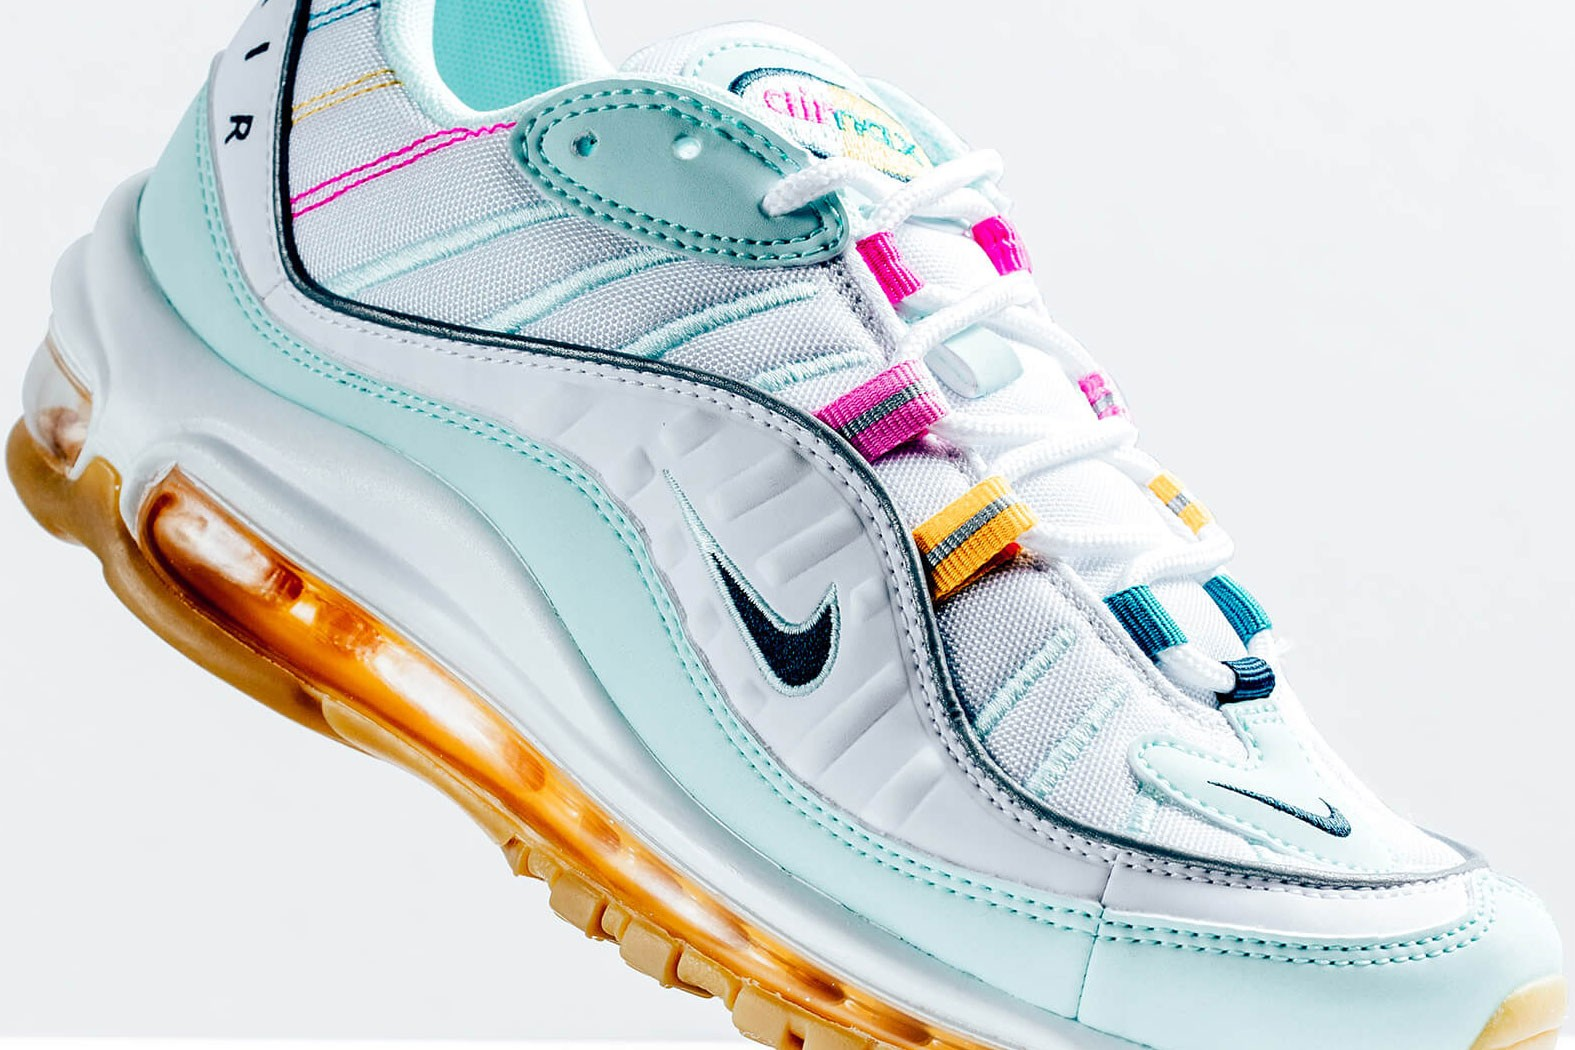 Nike's Tri-Colored Teal Air Max 98 Is